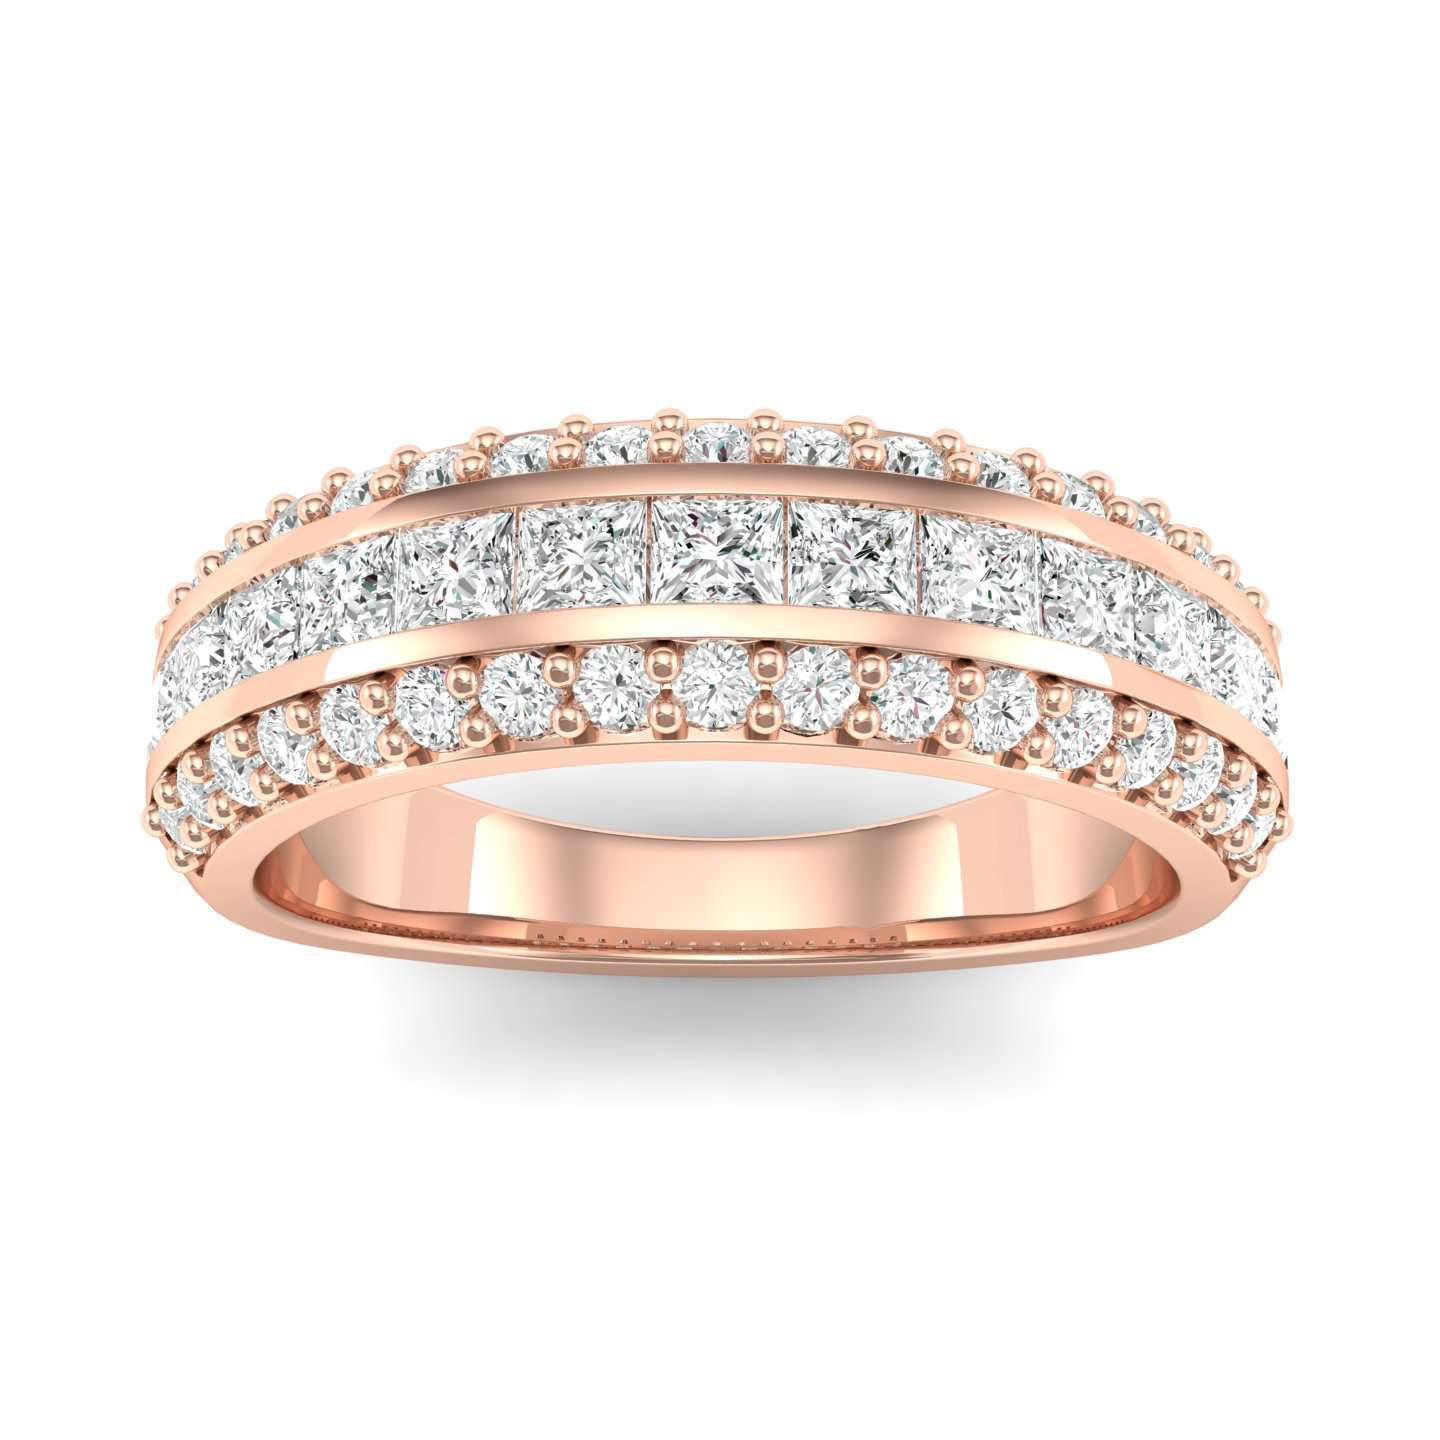 Diamond Wedding Rings For Women |Iconic Jewelry Pertaining To Newest Vertical Diamond Row Wedding Bands (View 9 of 25)